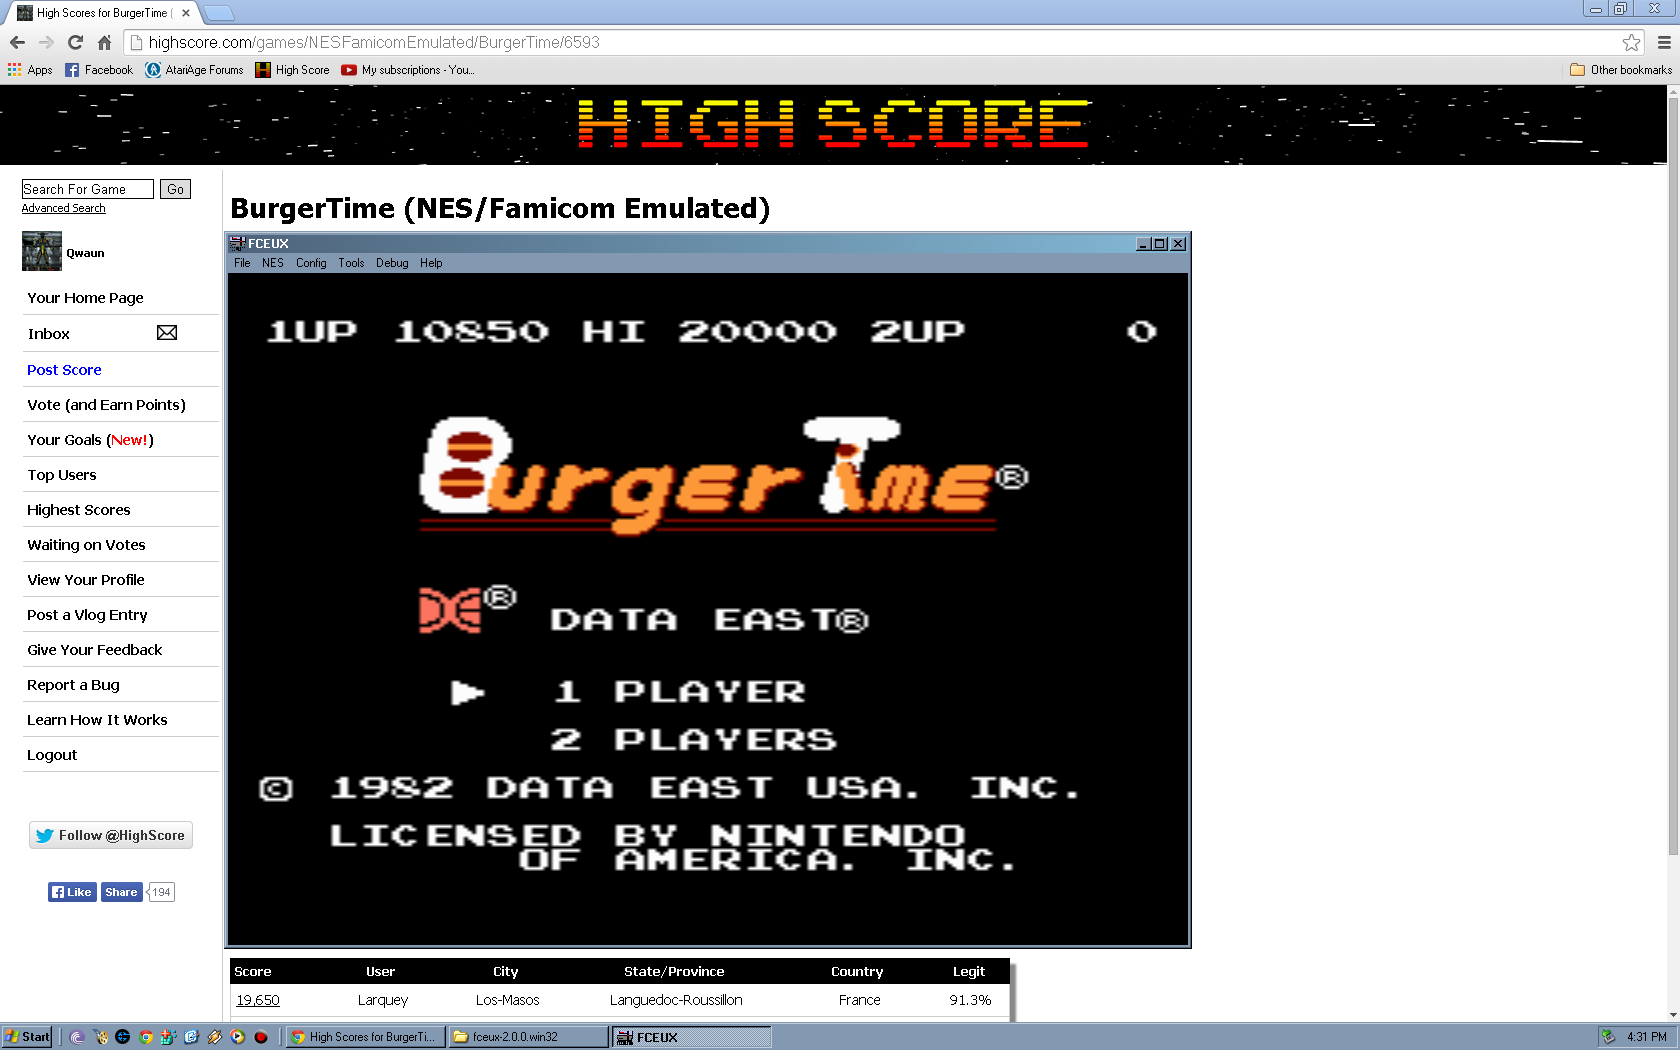 Qwaun: BurgerTime (NES/Famicom Emulated) 10,850 points on 2014-05-08 18:30:57